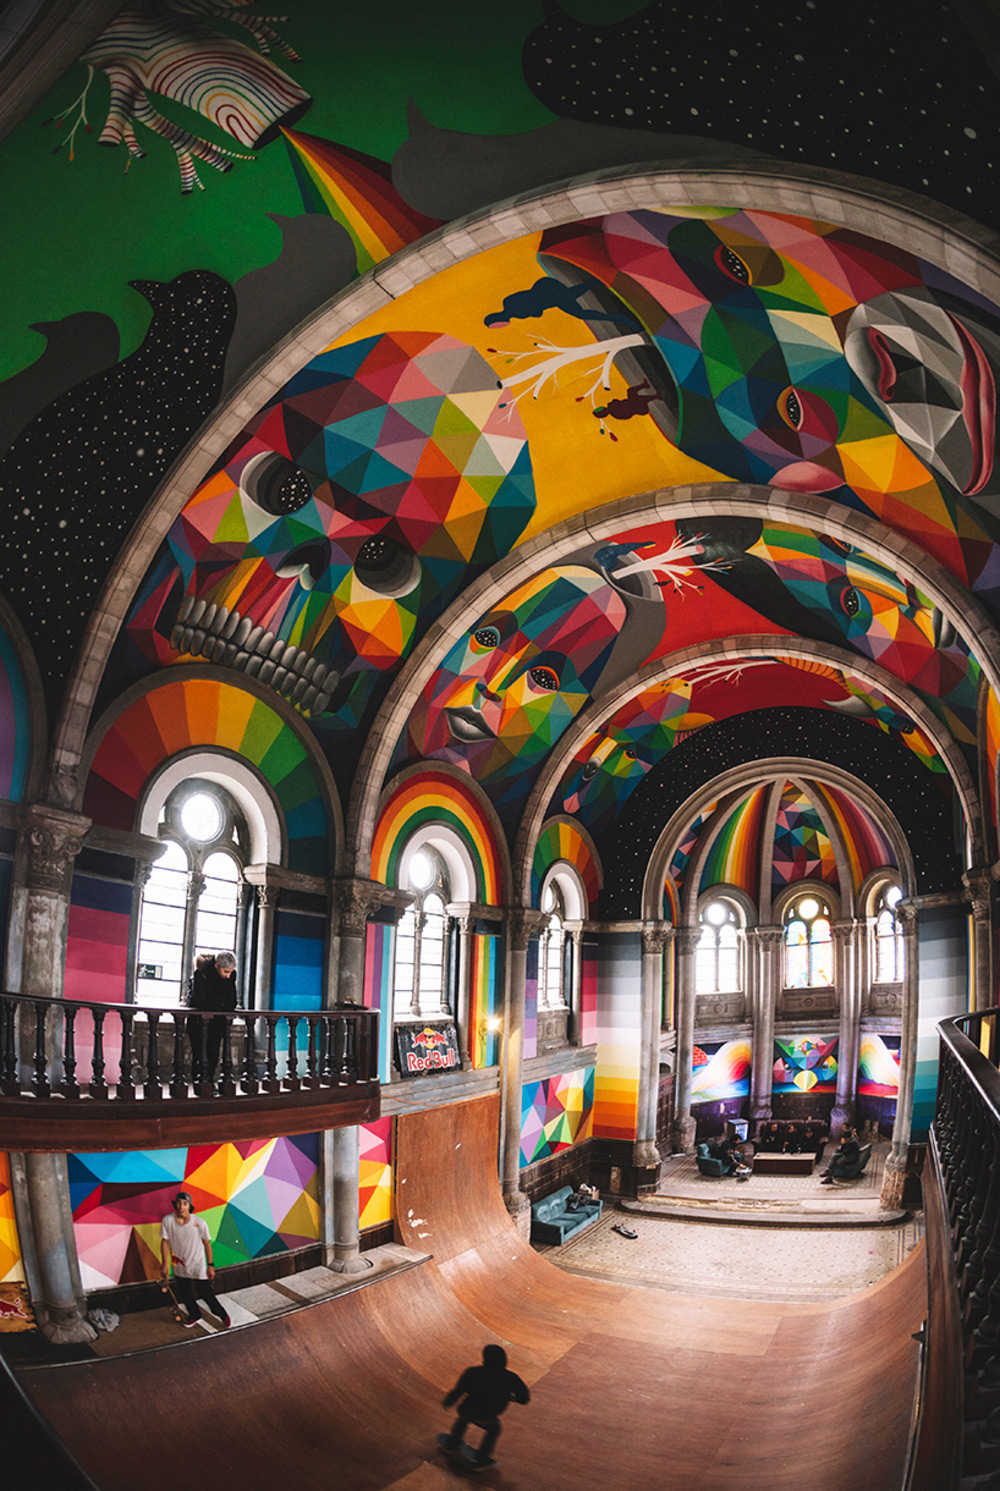 kaos_temple_skate_park_church_okuda_san_miguel_01